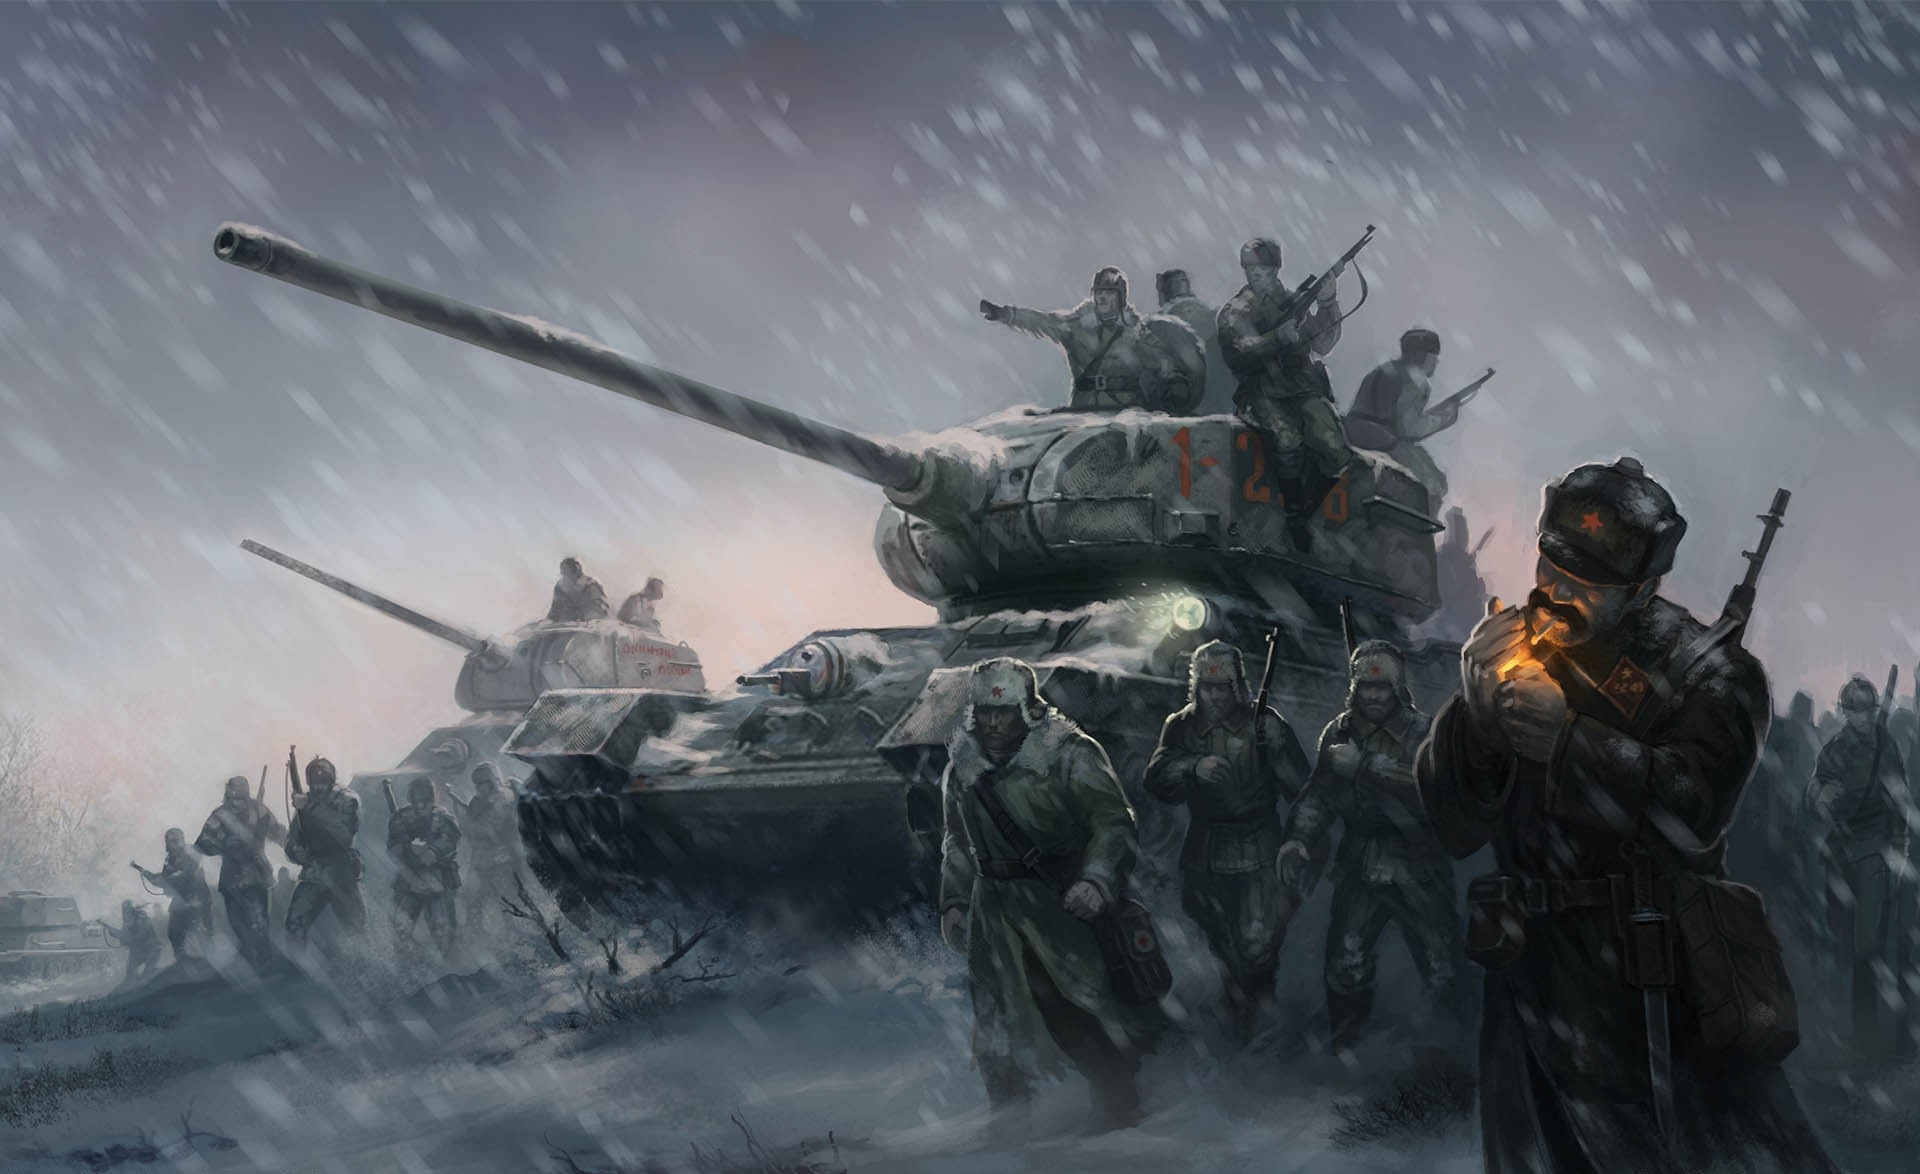 Two t 34 85s with a small group of infantry wait in the snow hd wallpaper background image - Awesome army wallpapers ...